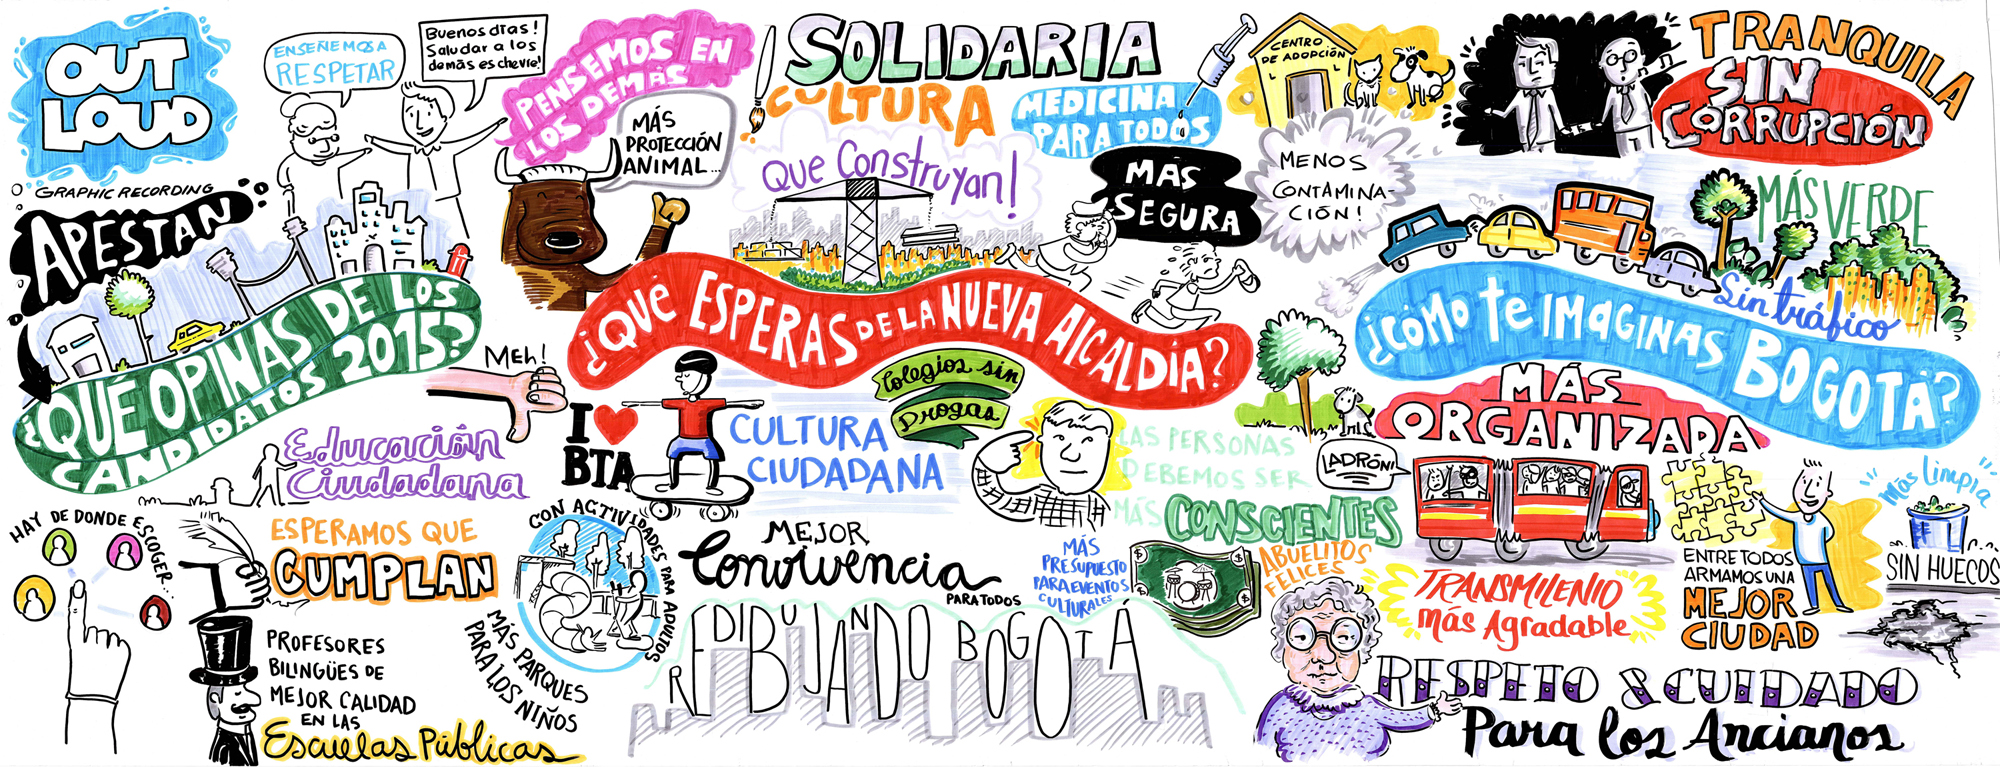 Re-drawing Bogotá - During Mayor elections we were invited to an art exhibition where people got to tell us their ideas of the city they imagine.